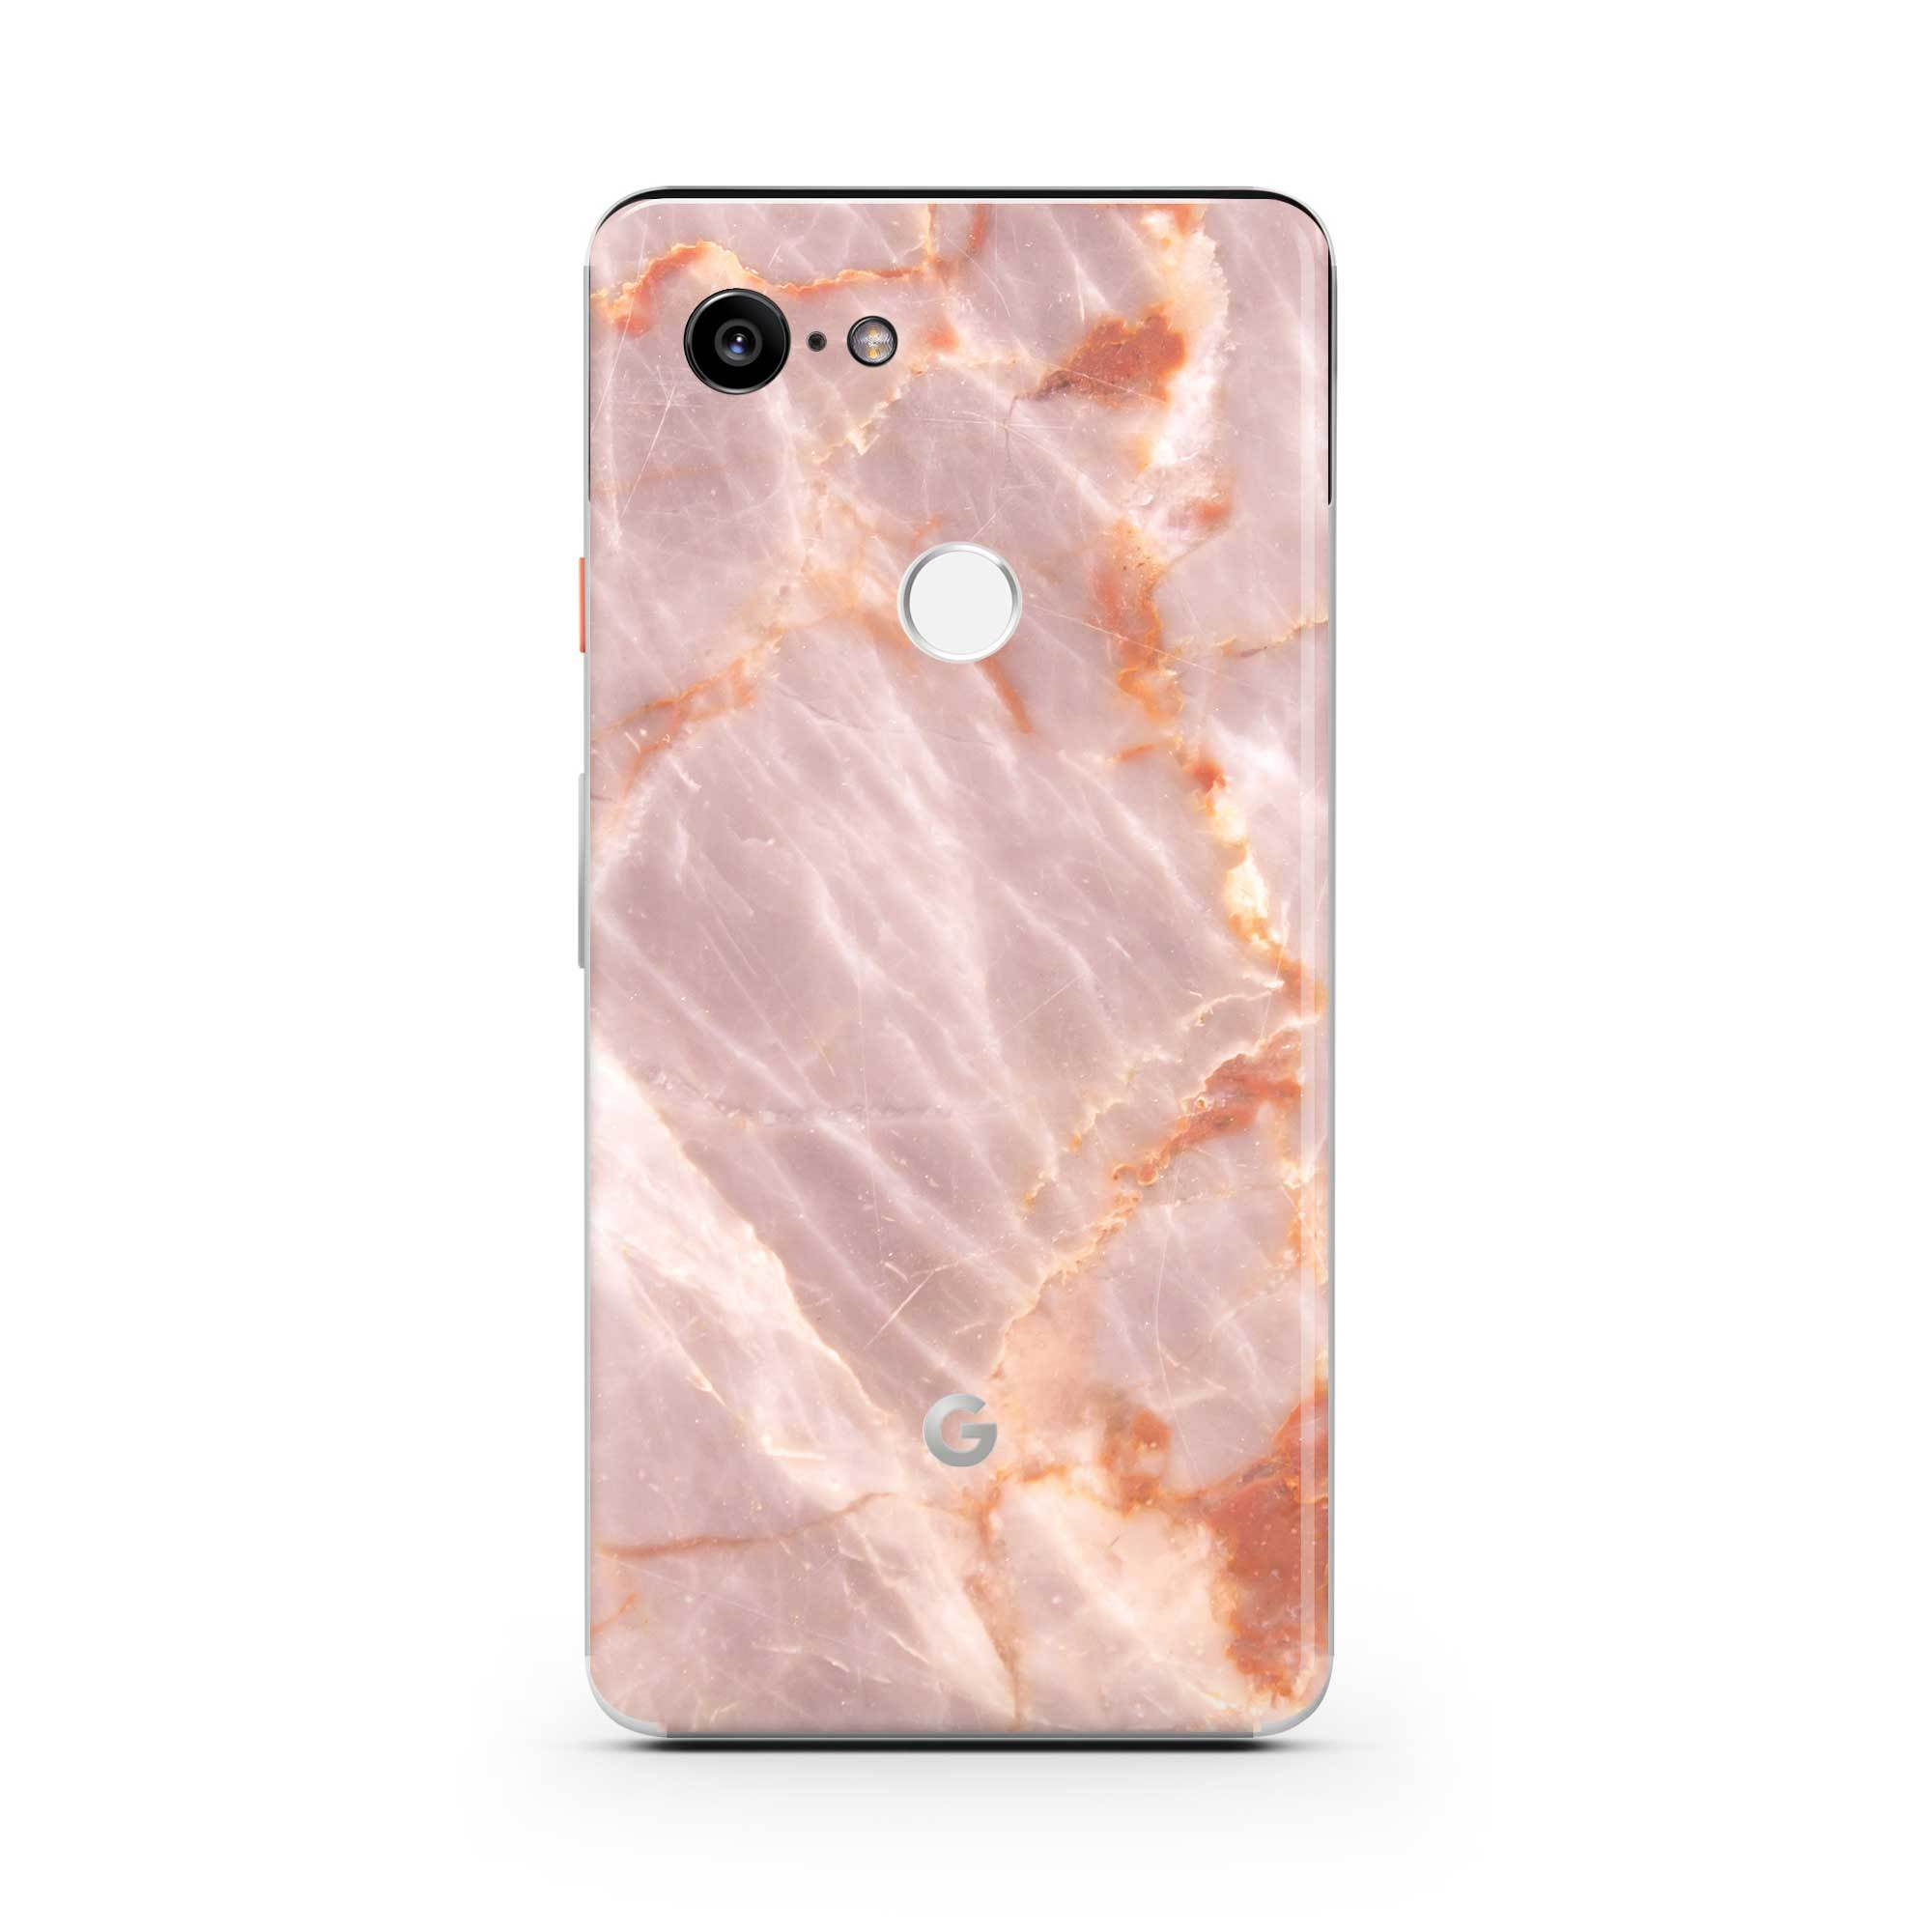 Blush Marble Pixel 3a XL Skin + Case